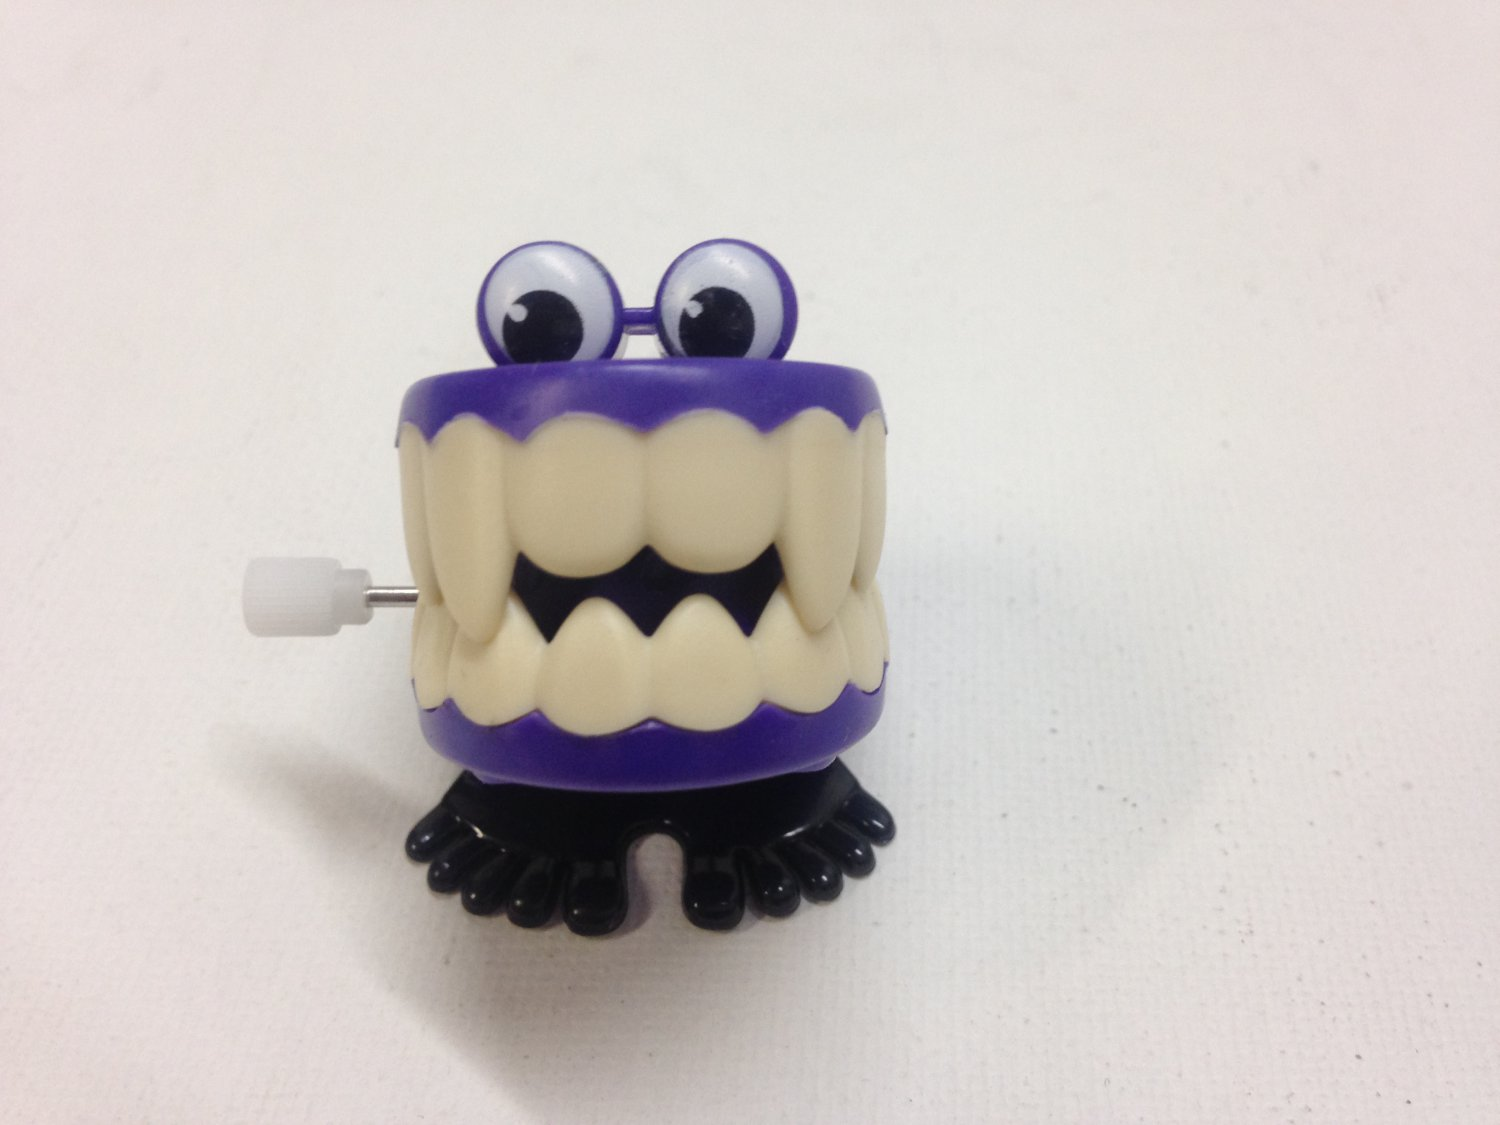 Wind-up Chattering Vampire Teeth